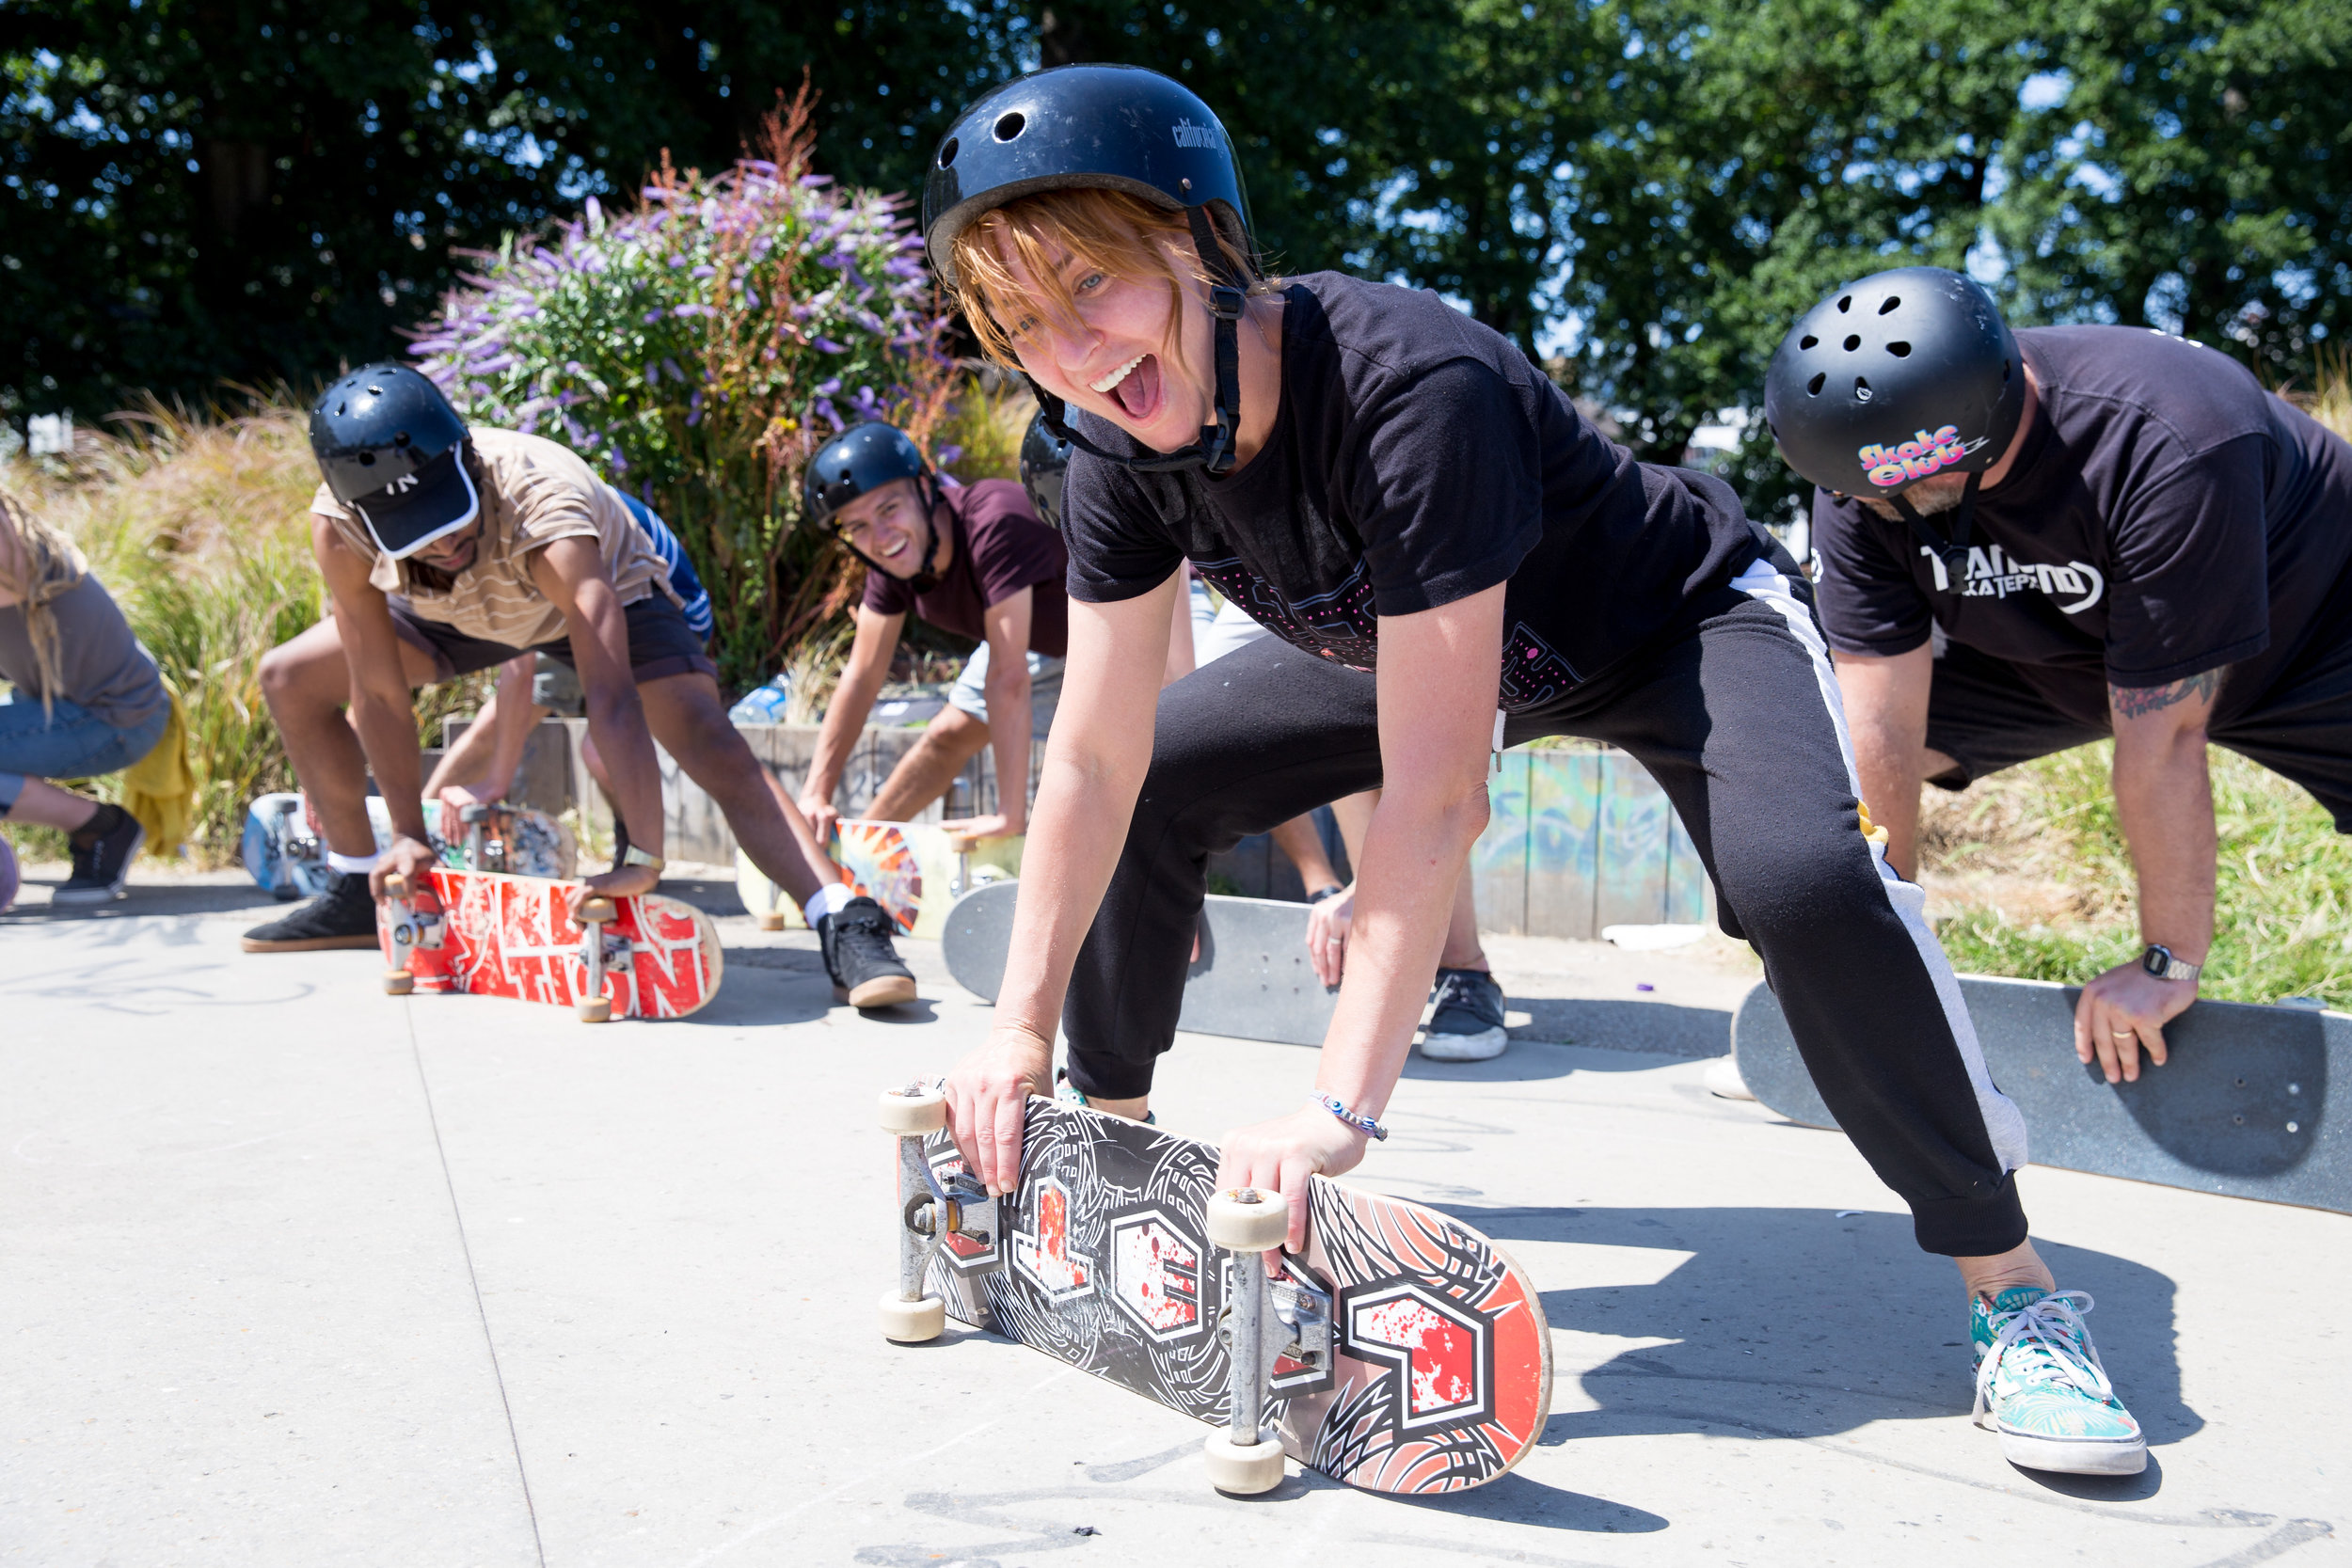 Become a coach - Become an Ofqual accredited skateboard coach with Skateboard England.Find out more